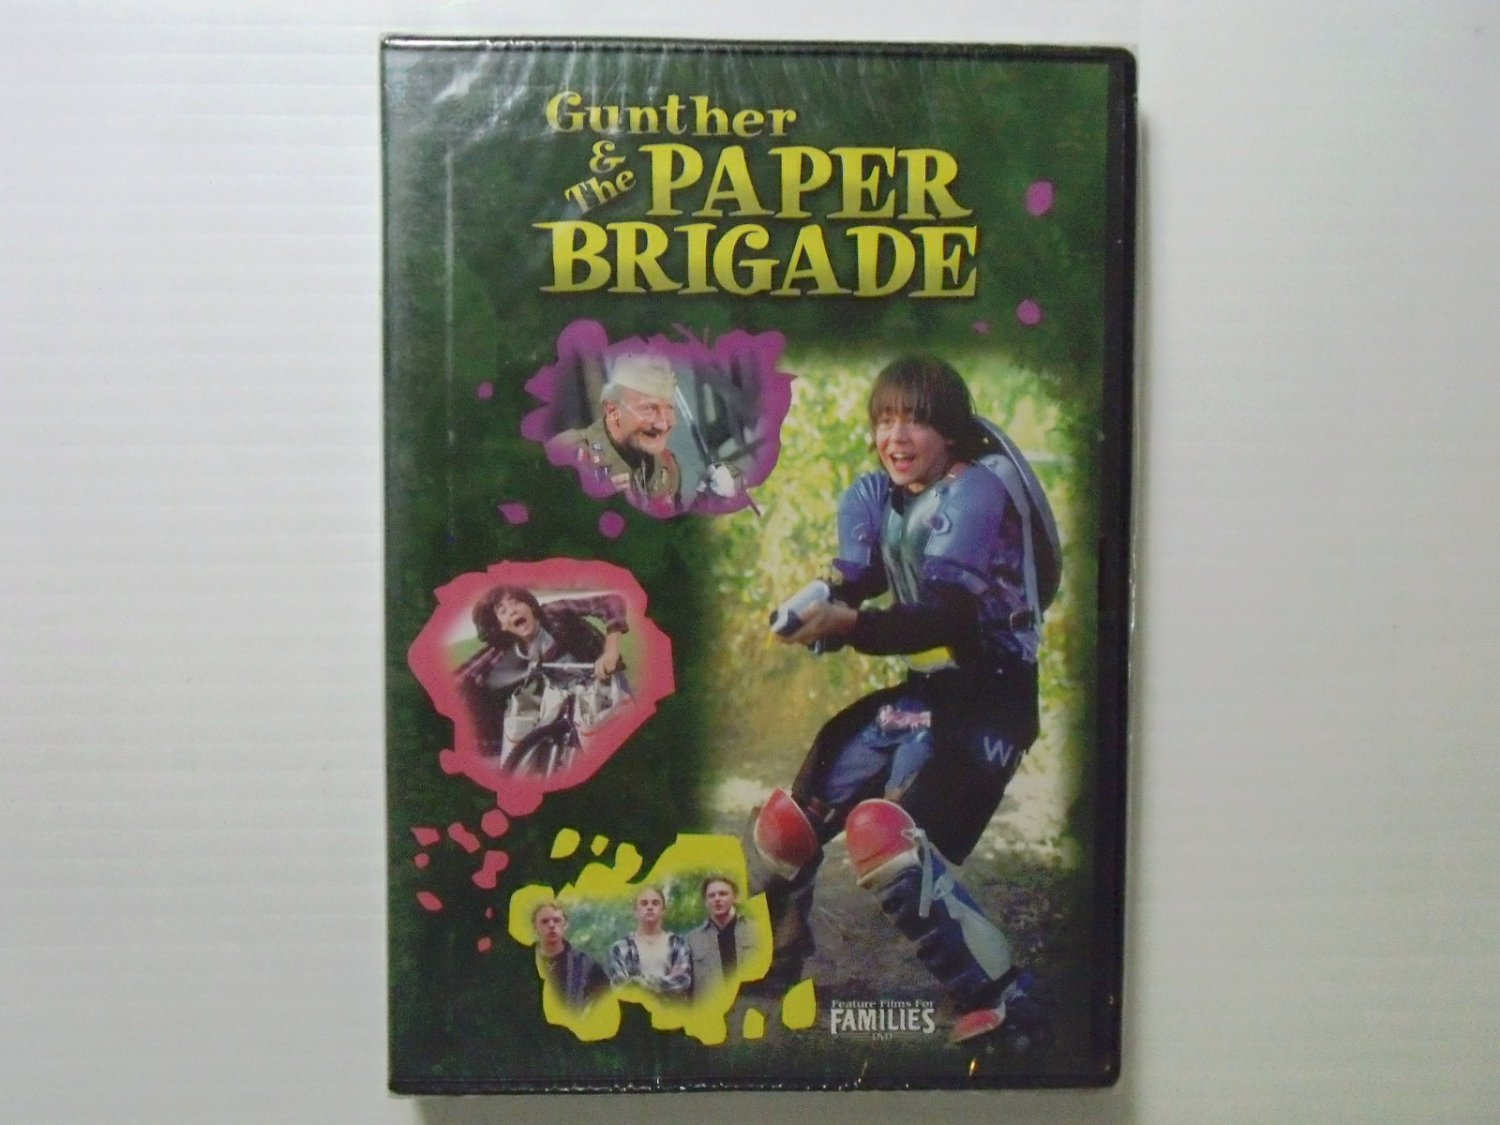 the paper brigade Watch the paper brigade putlocker full movie in hd quality for free on putlocker com you could watch online all of solarmovie , 123movie , gomovies , in one putlocker movies place select the video source below and stream online, if movie was removed, please check another server to play the paper brigade movie on putlocker online.